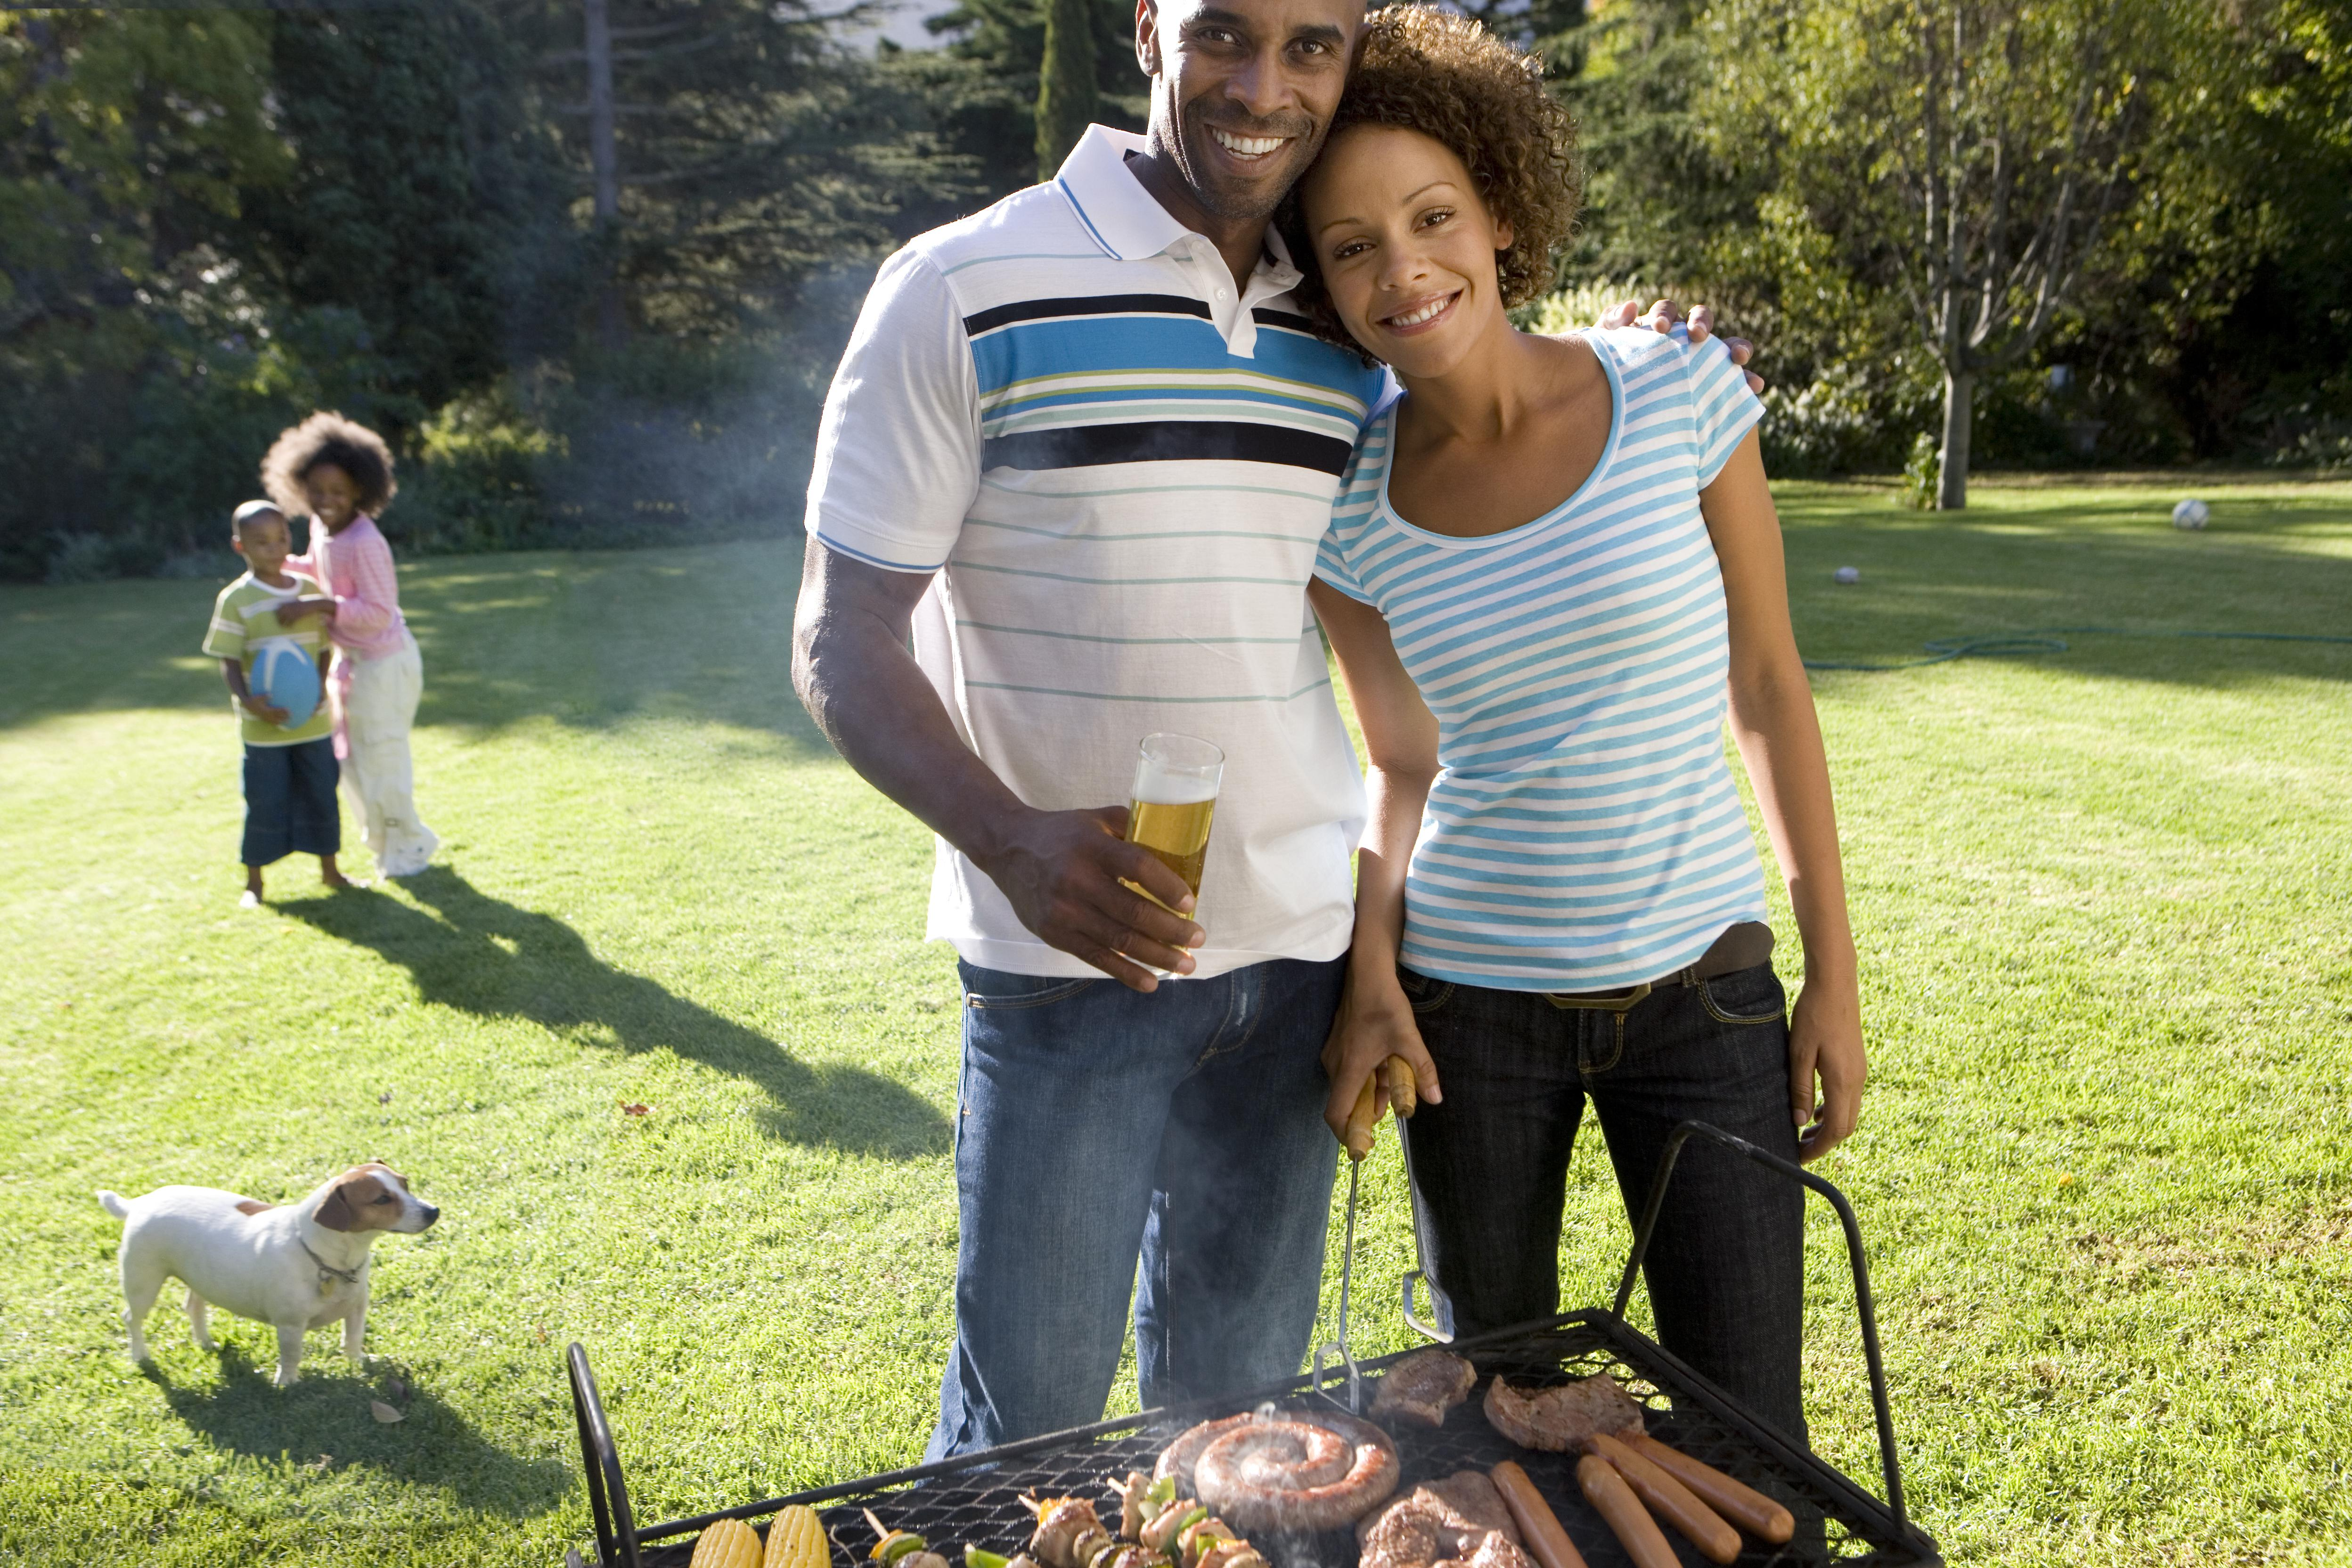 Couple by barbeque, son and daughter (6-10) in background, smiling, portrait